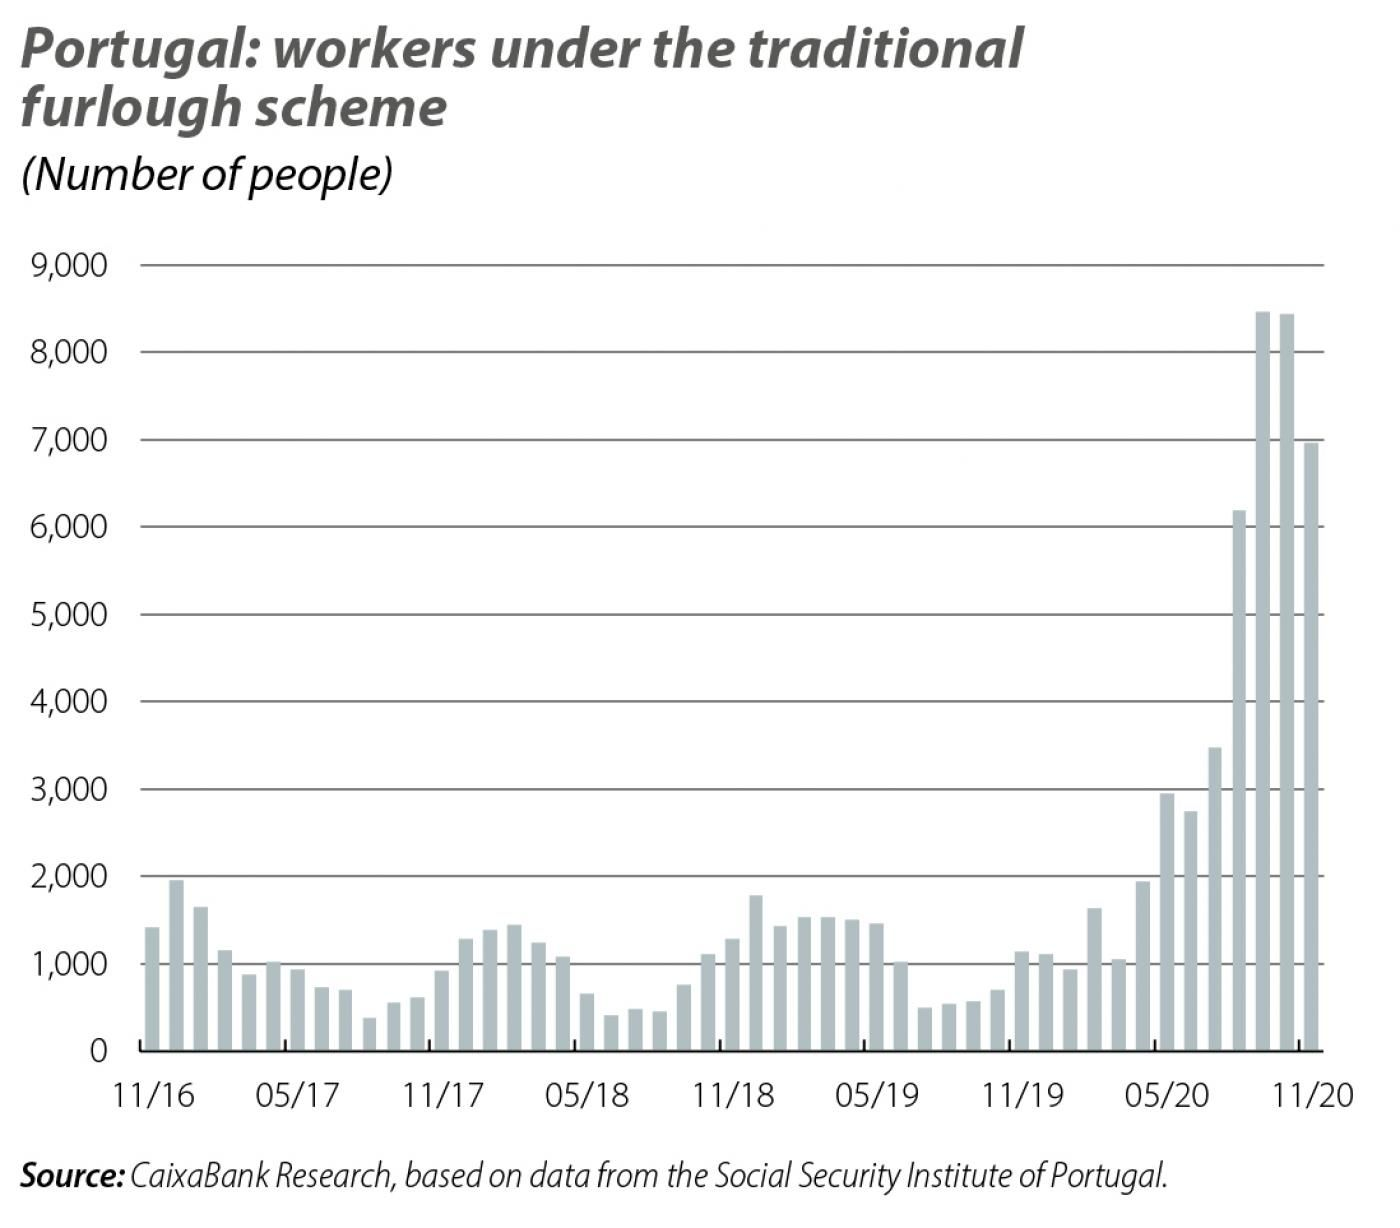 Portugal: workers under the traditional furlough scheme